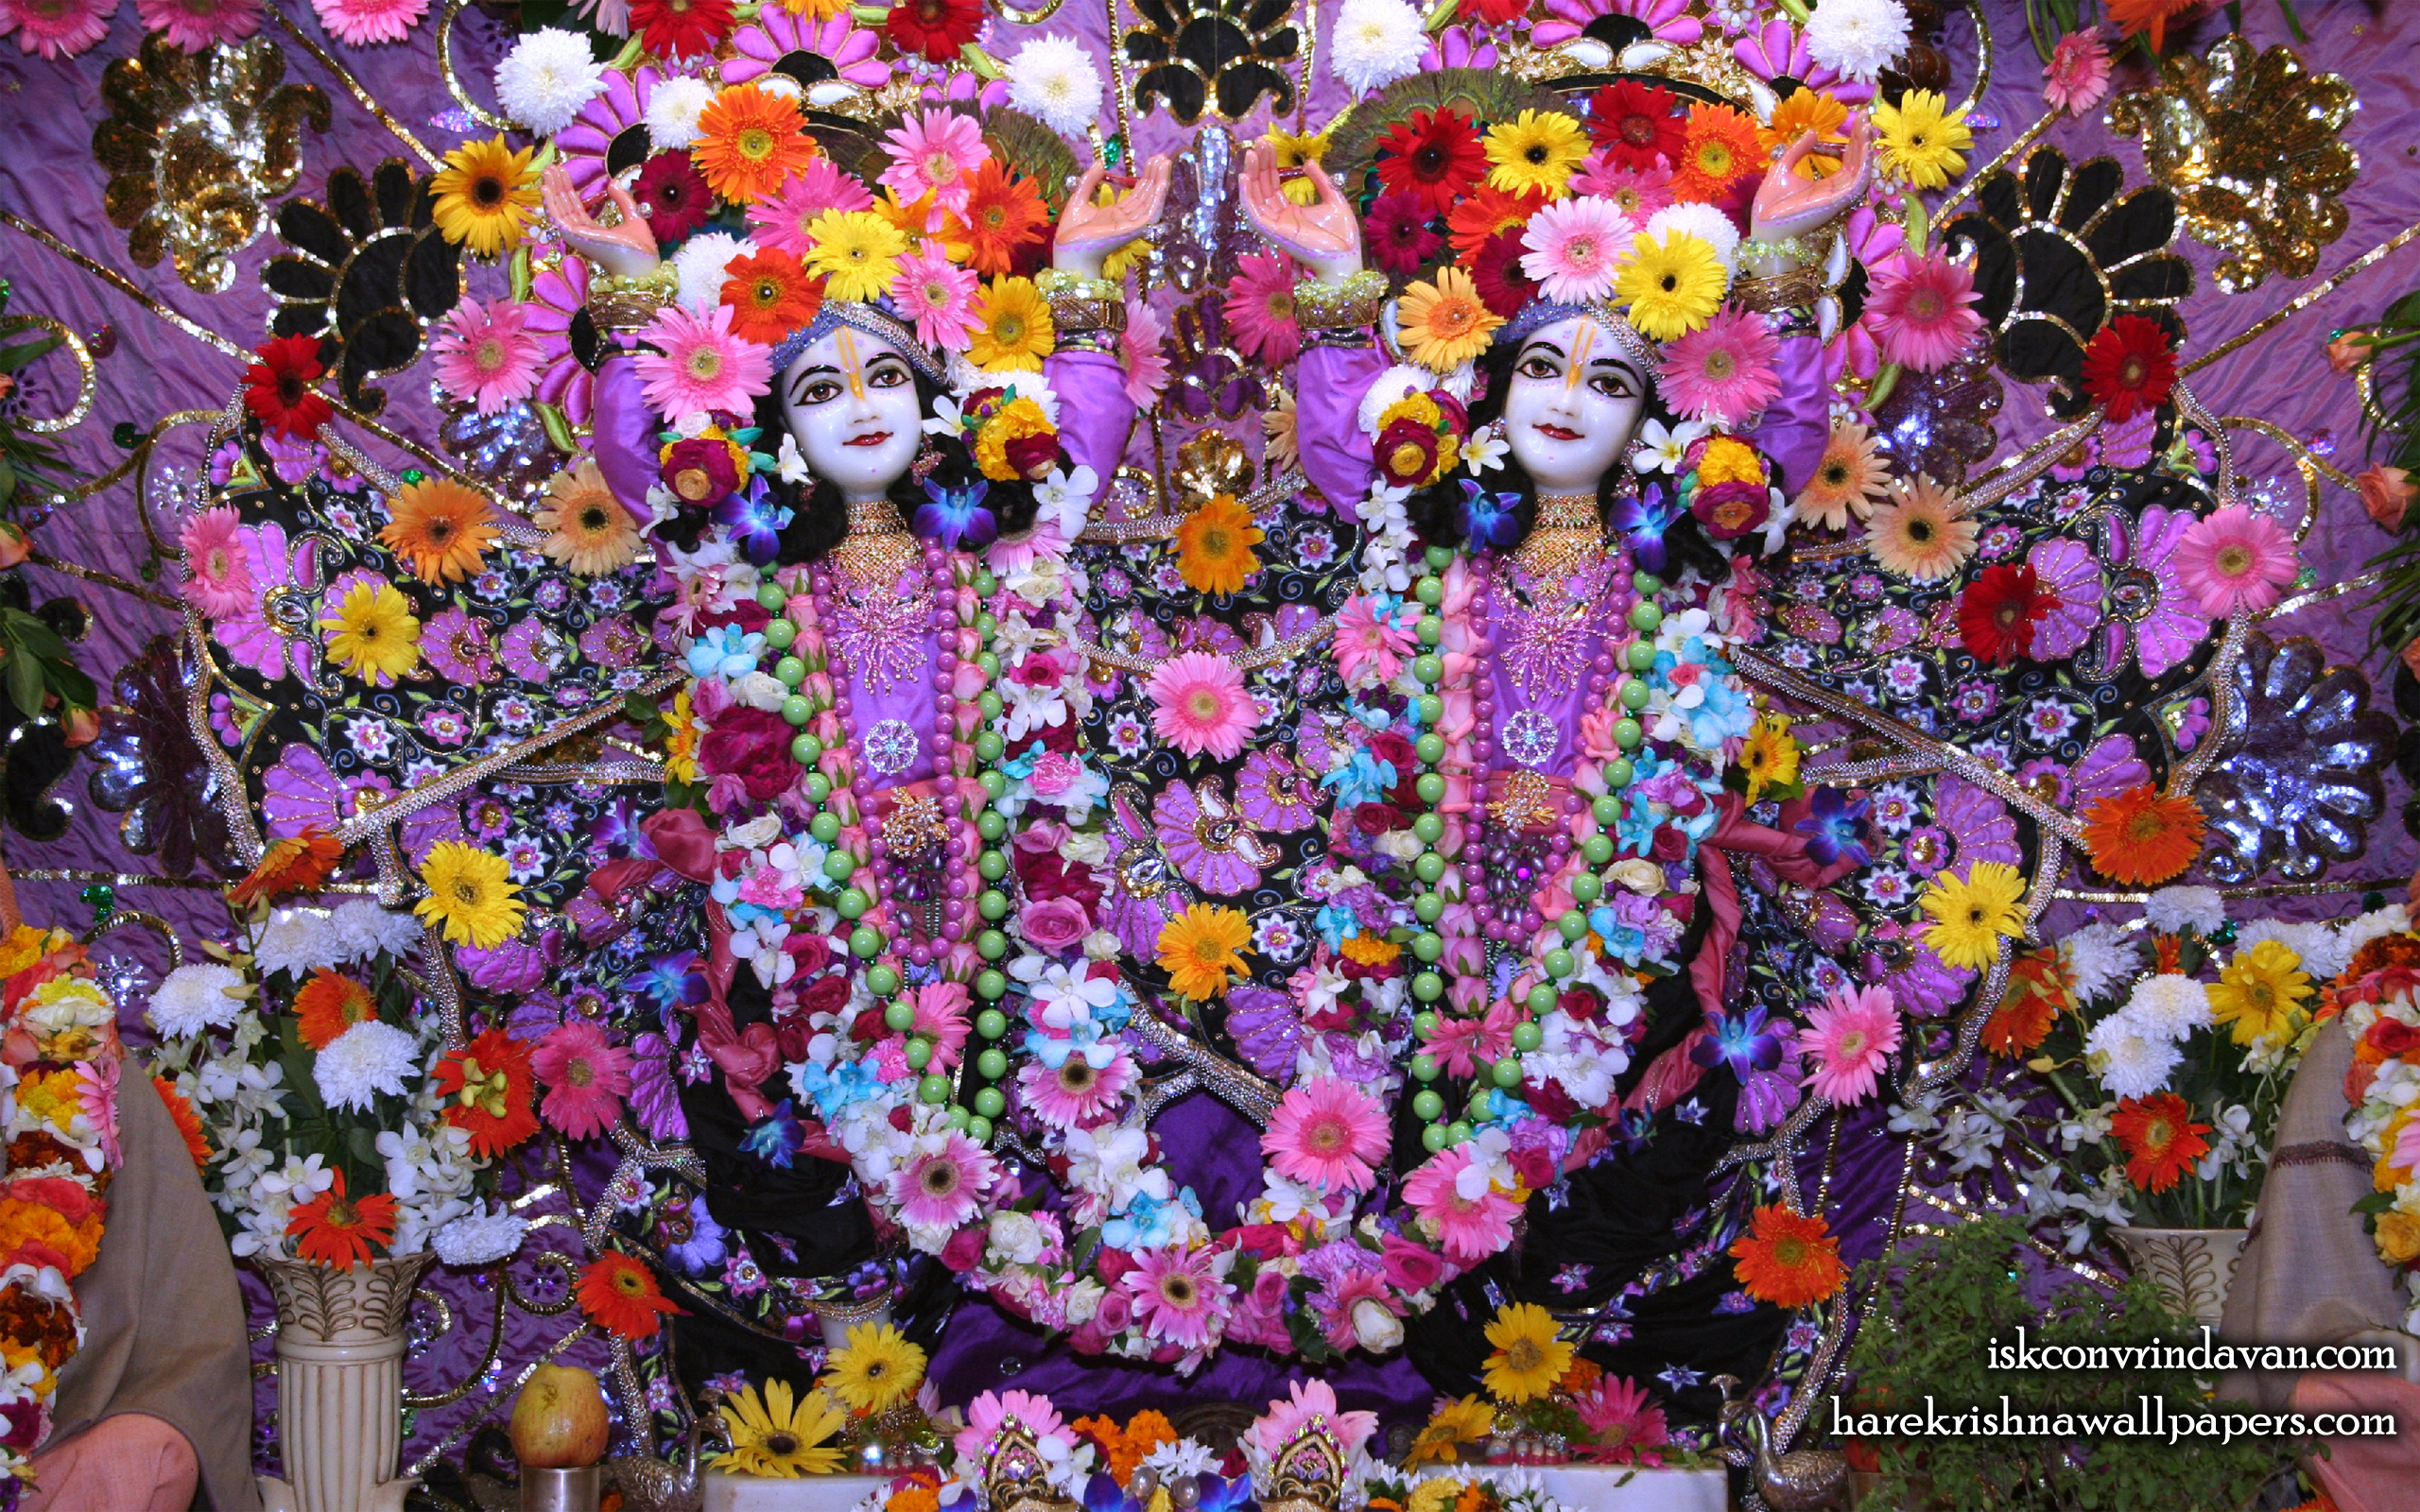 Sri Sri Gaura Nitai Wallpaper (086) Size 2560x1600 Download